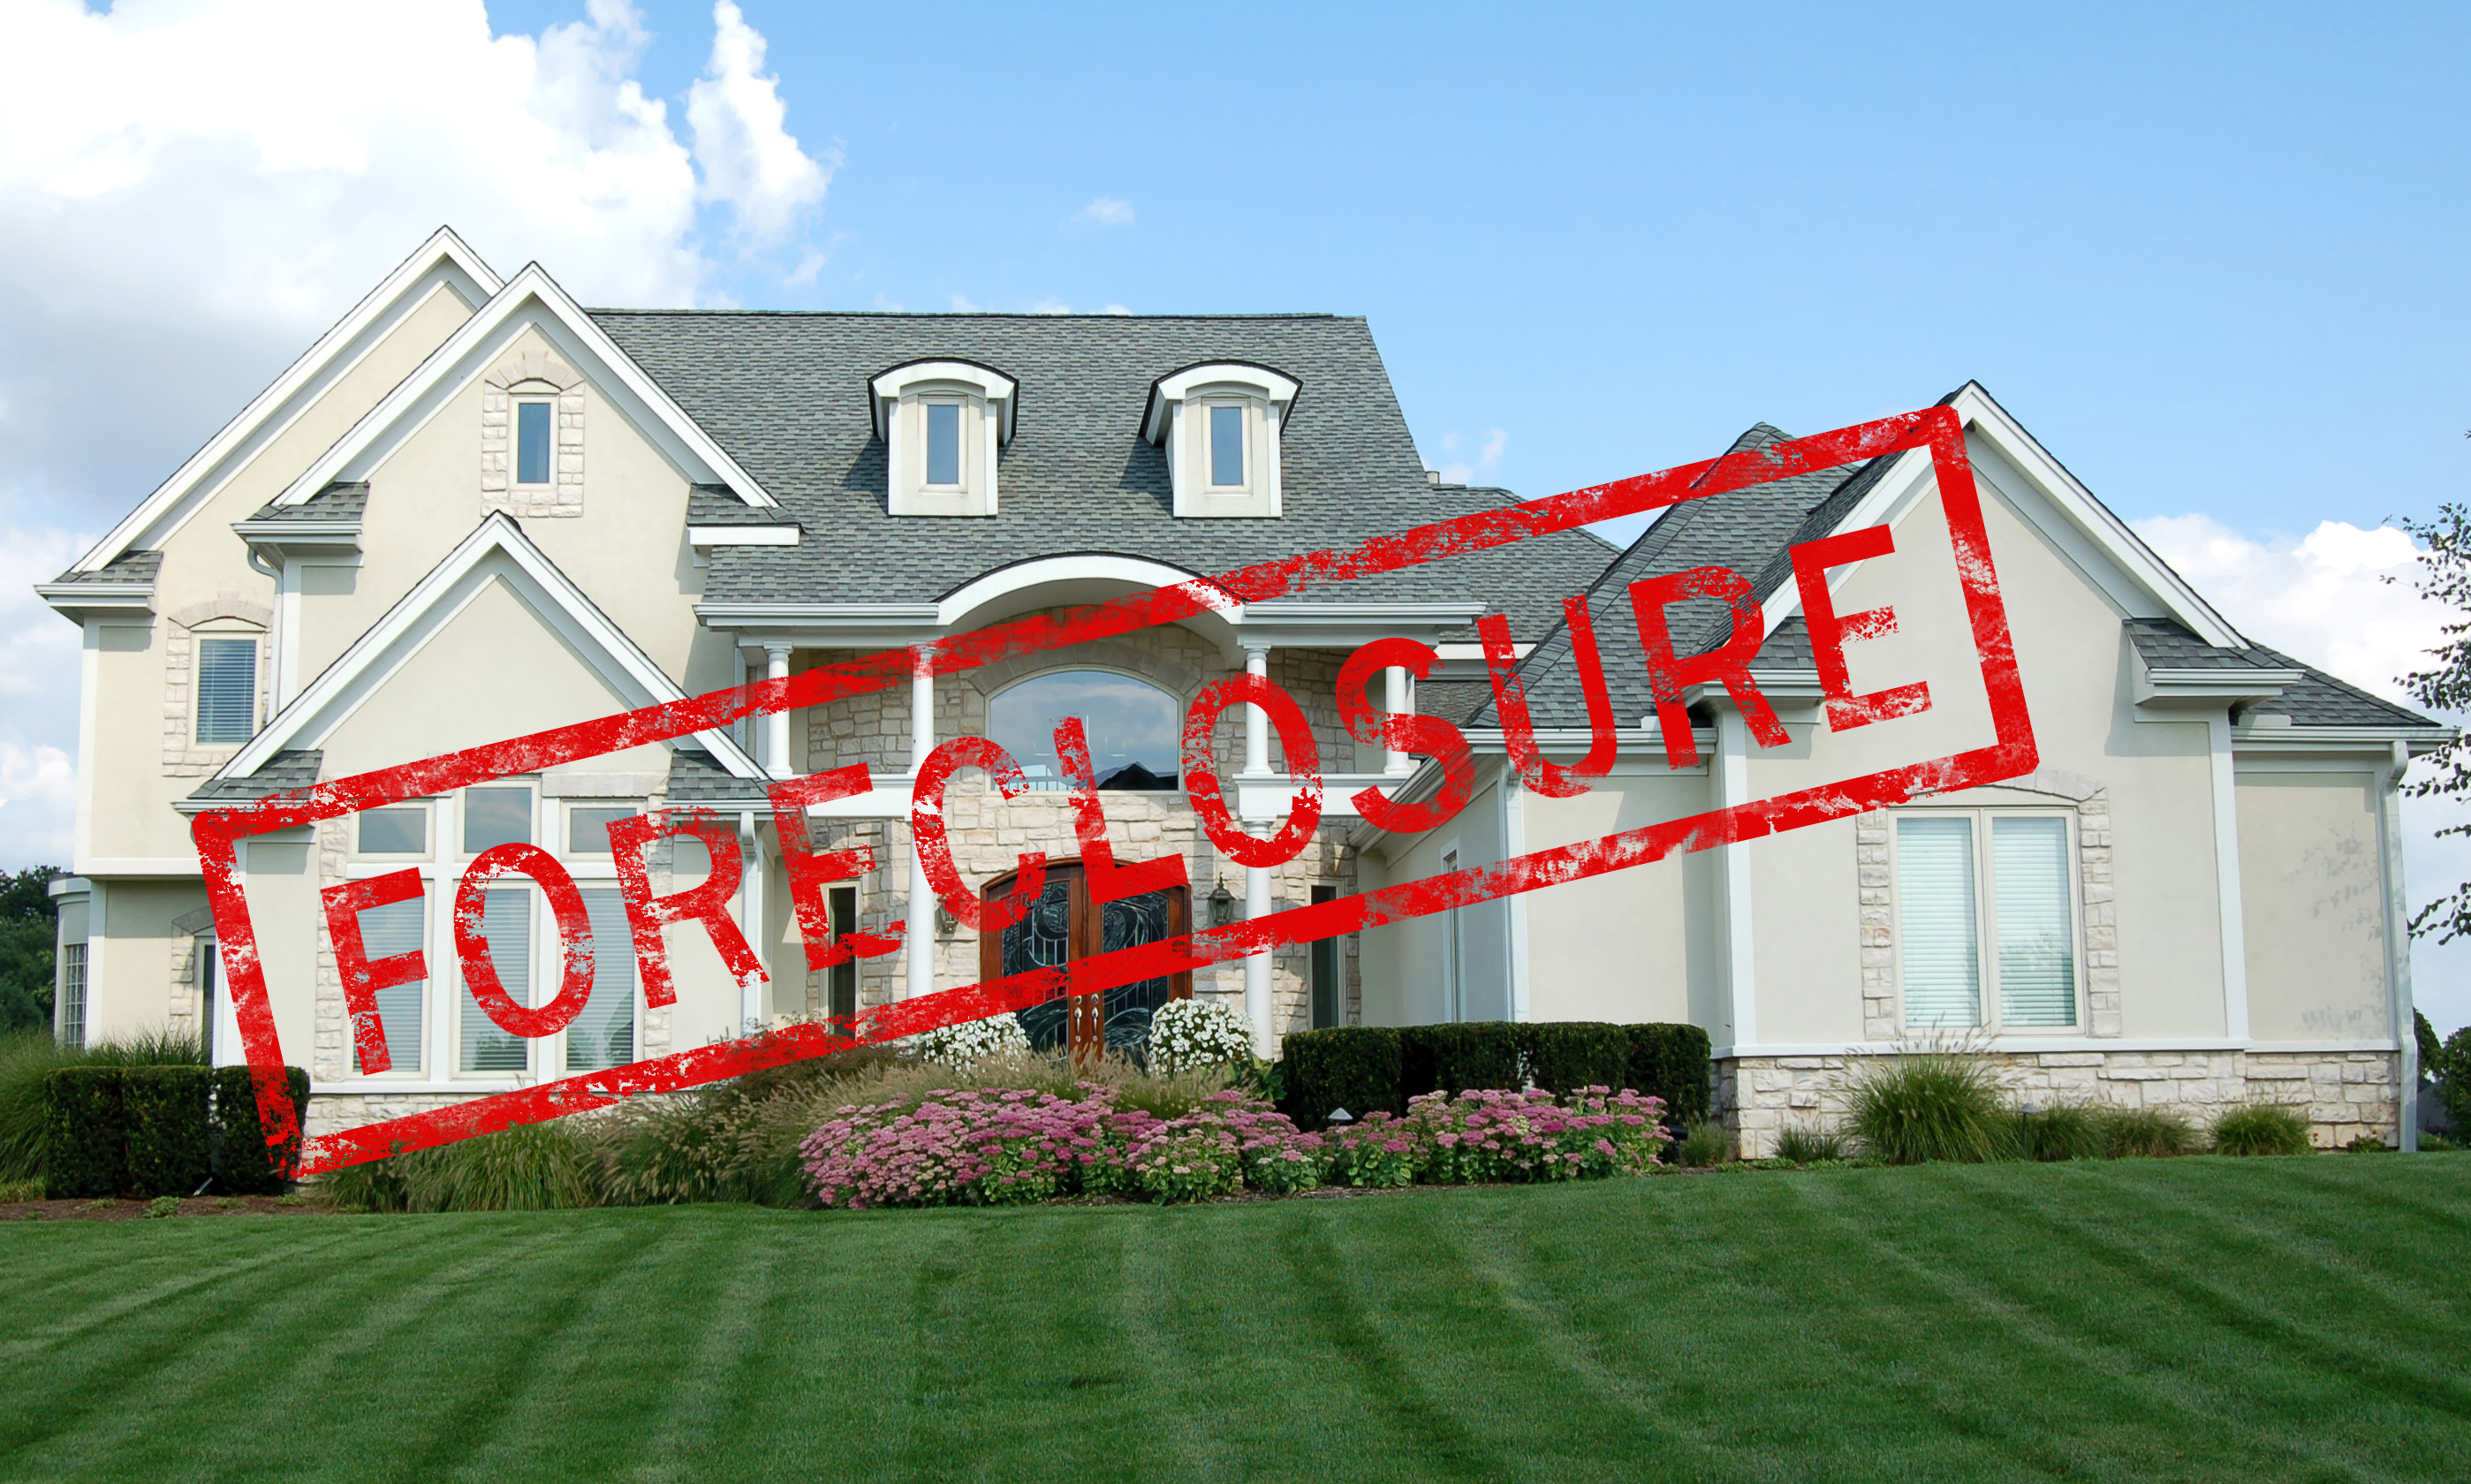 Call Astute Appraisals, Inc. when you need valuations regarding Howard foreclosures